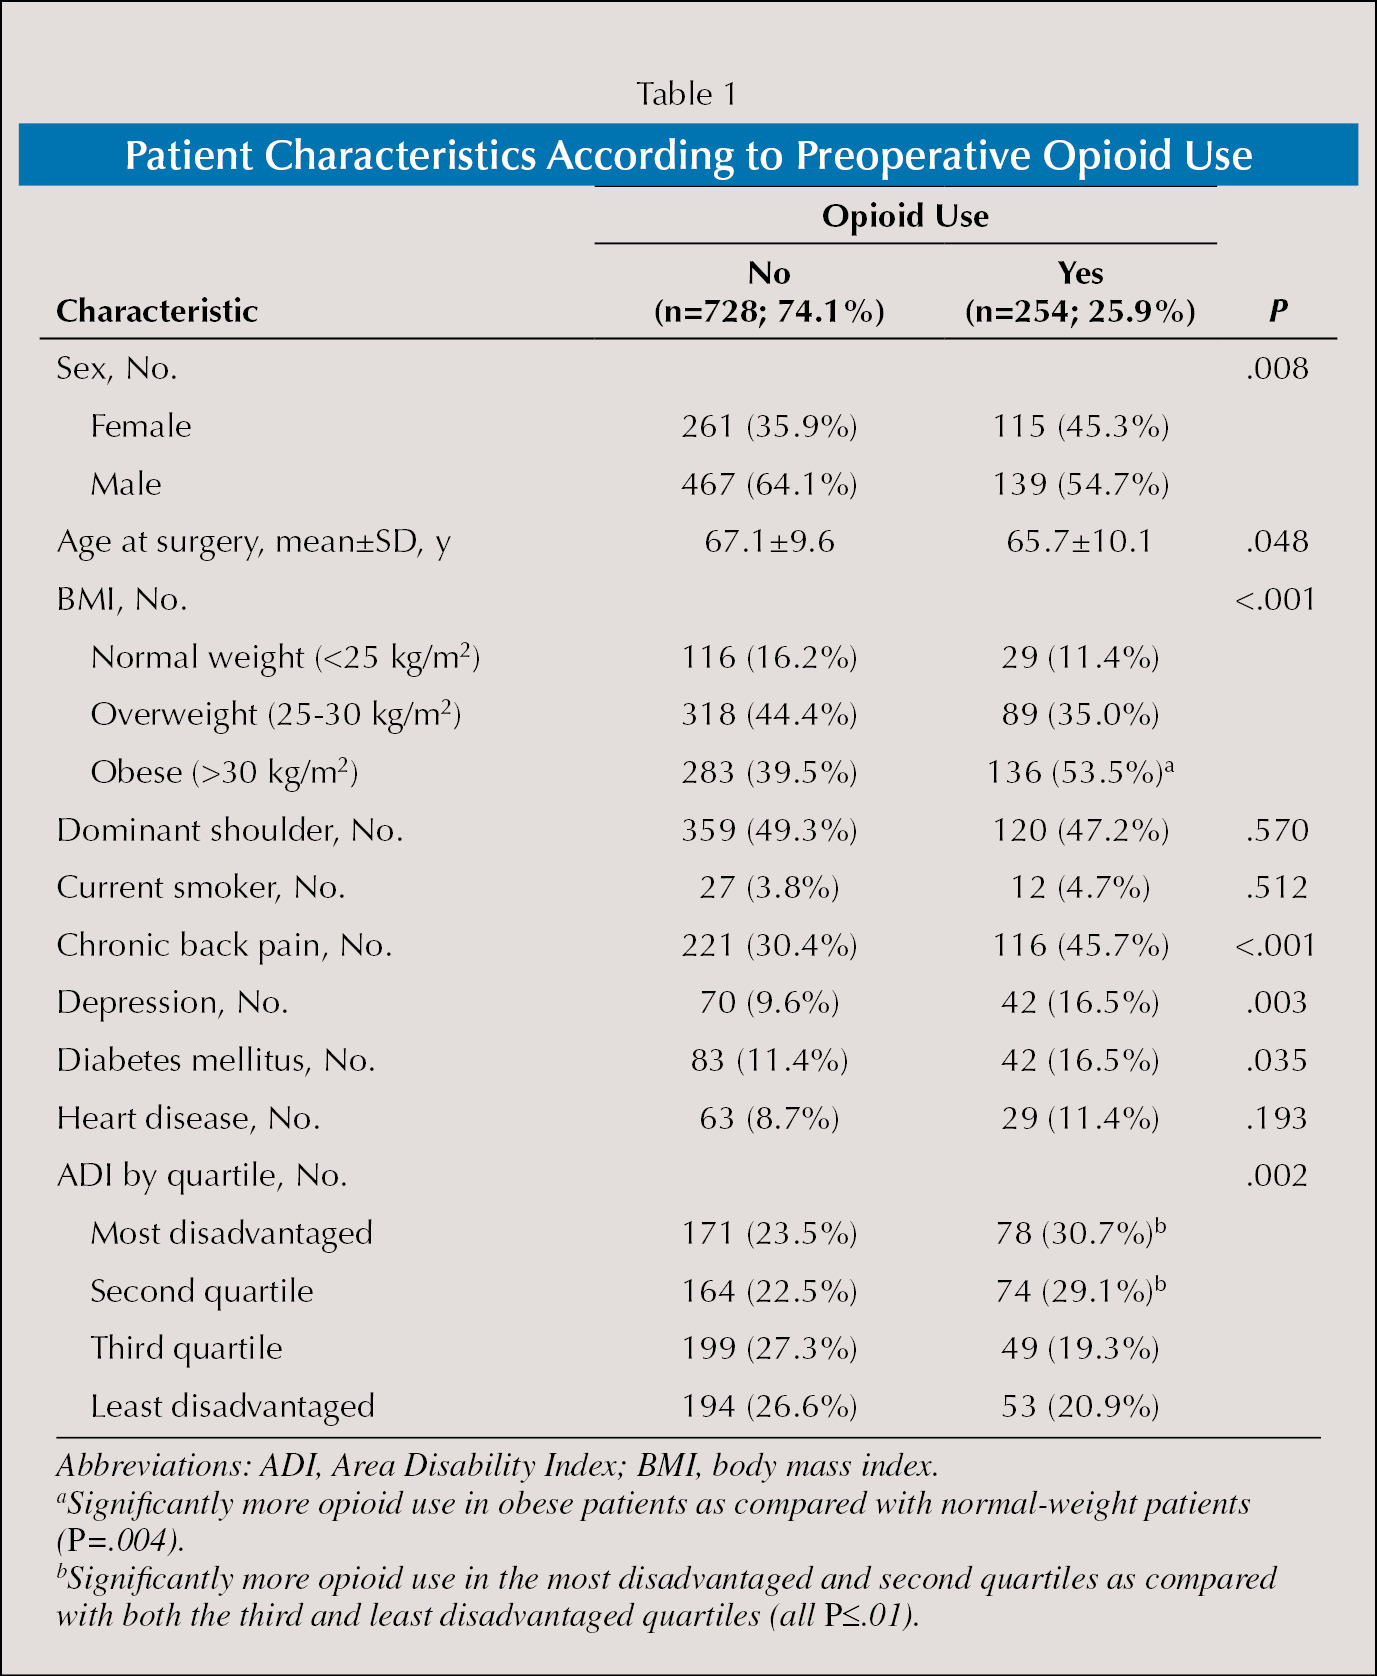 Patient Characteristics According to Preoperative Opioid Use